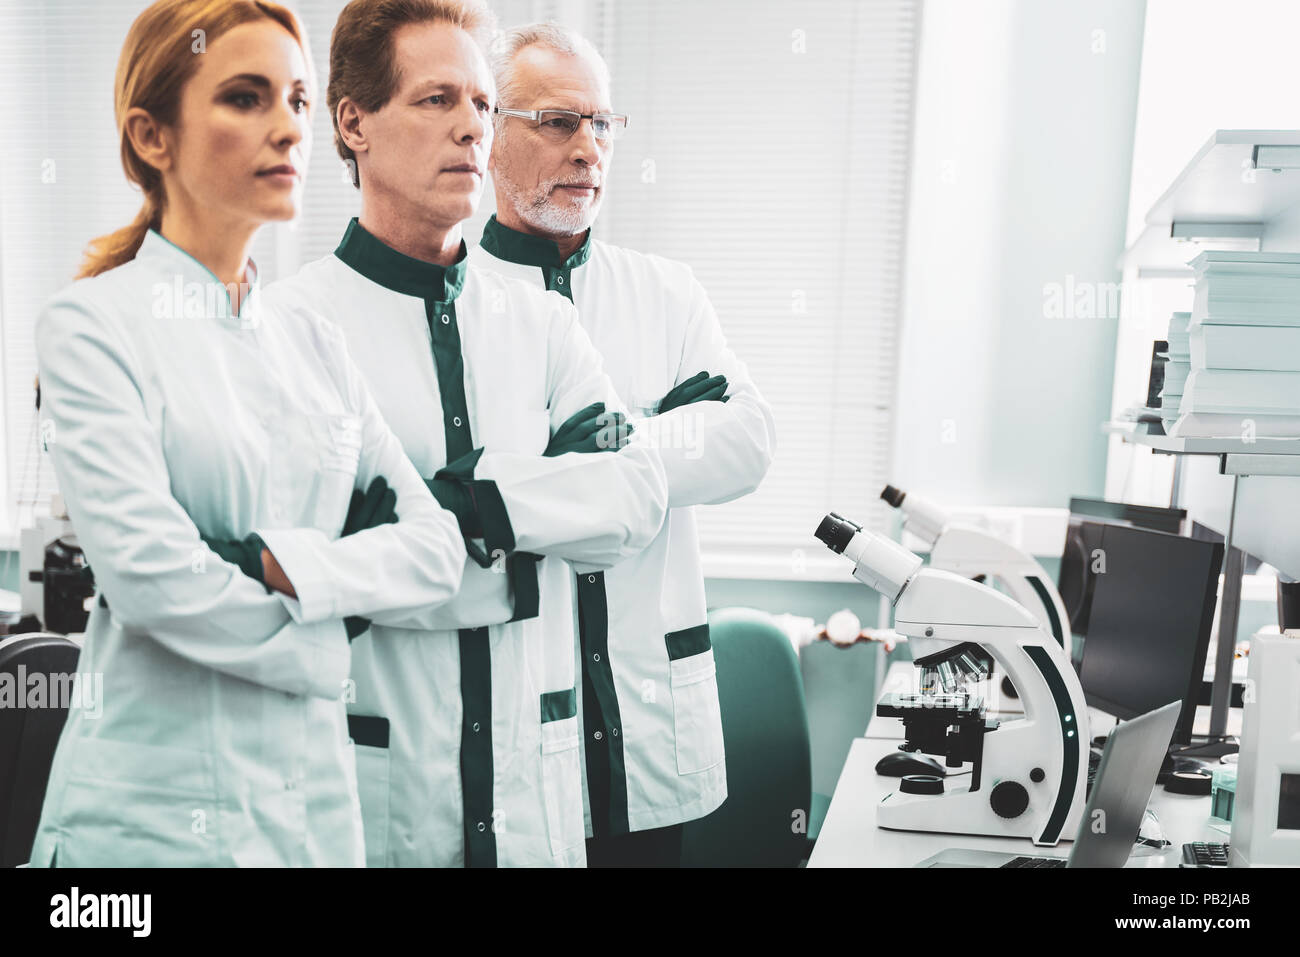 Three chemical researchers standing near modern microscope - Stock Image